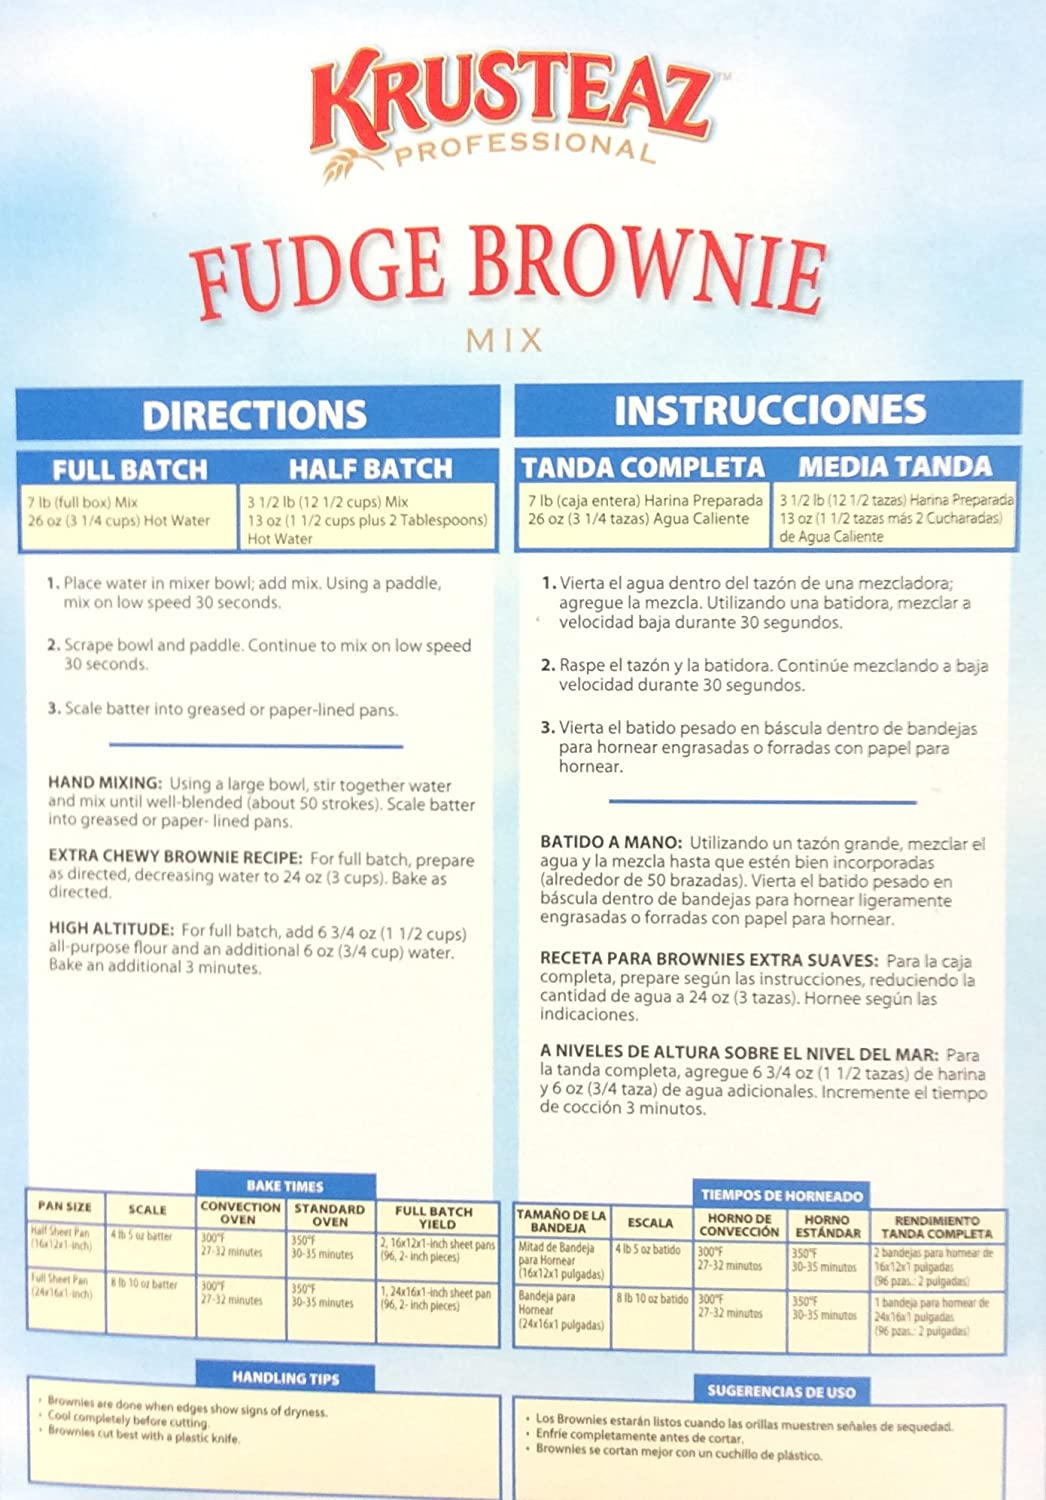 Amazon.com : Krusteaz FUDGE BROWNIE Mix 7lb. (4 Pack ...